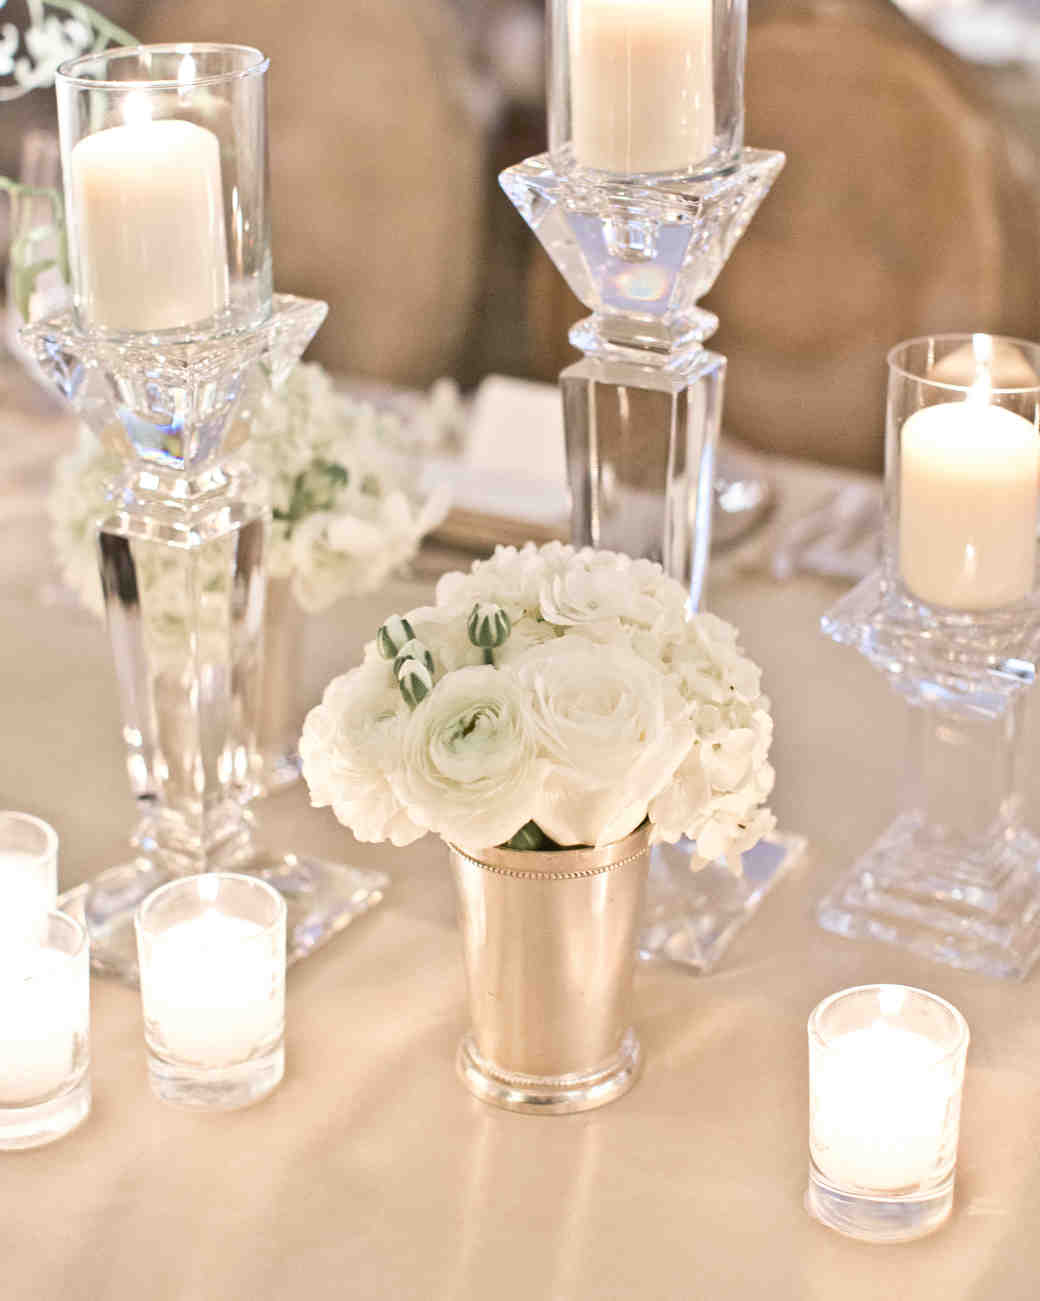 Crystal Candleholders and White Flower Arrangement Centerpiece